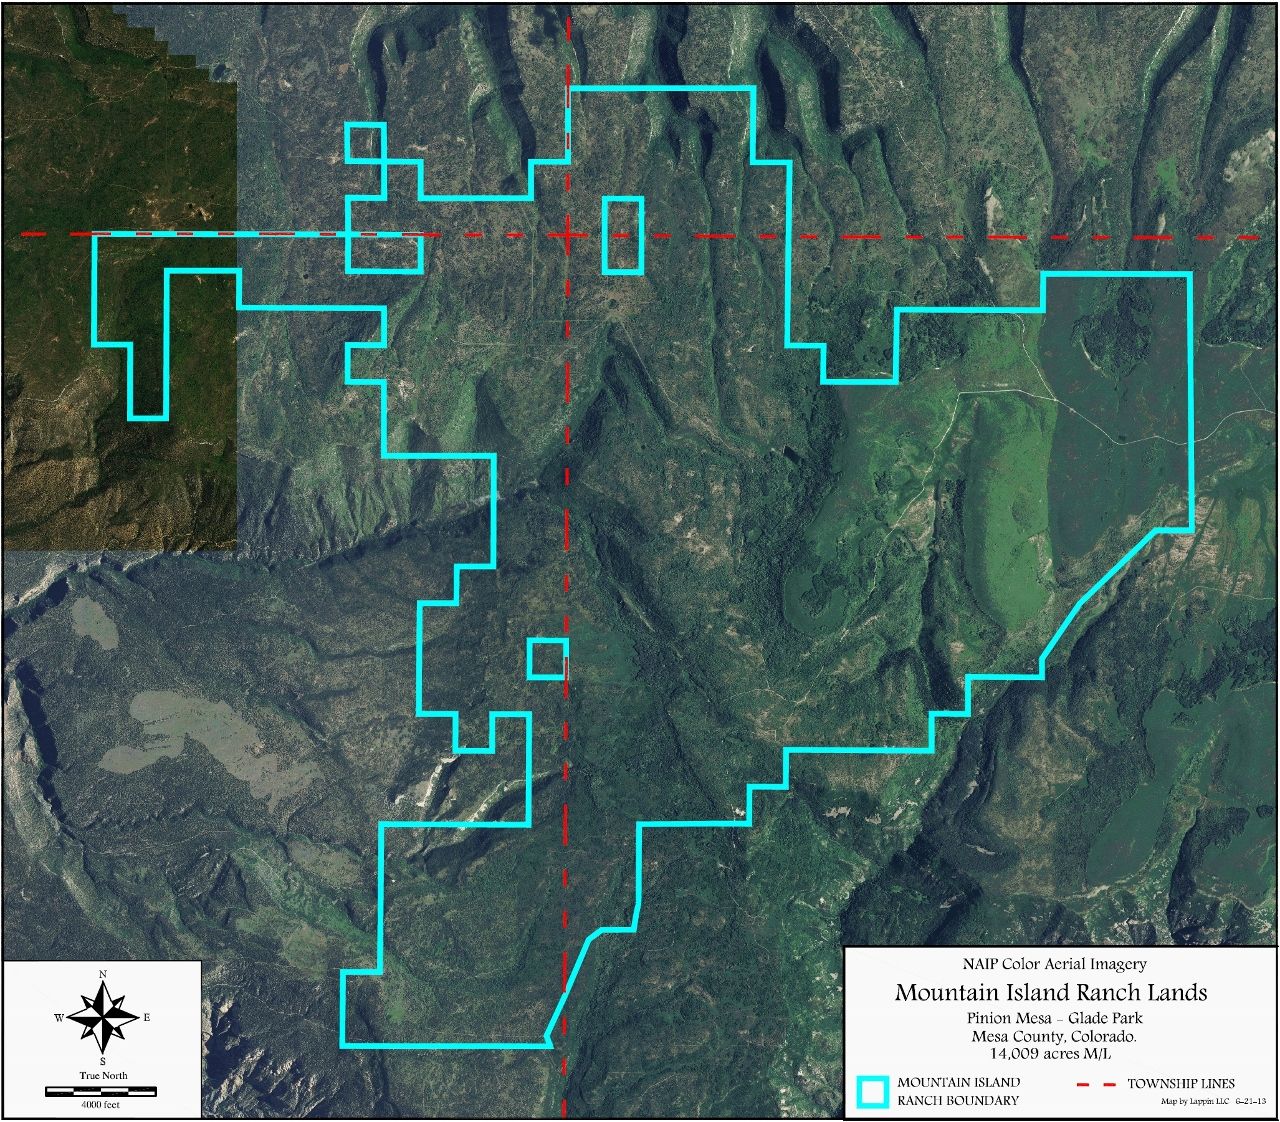 professional mapping of mining claims and real estate